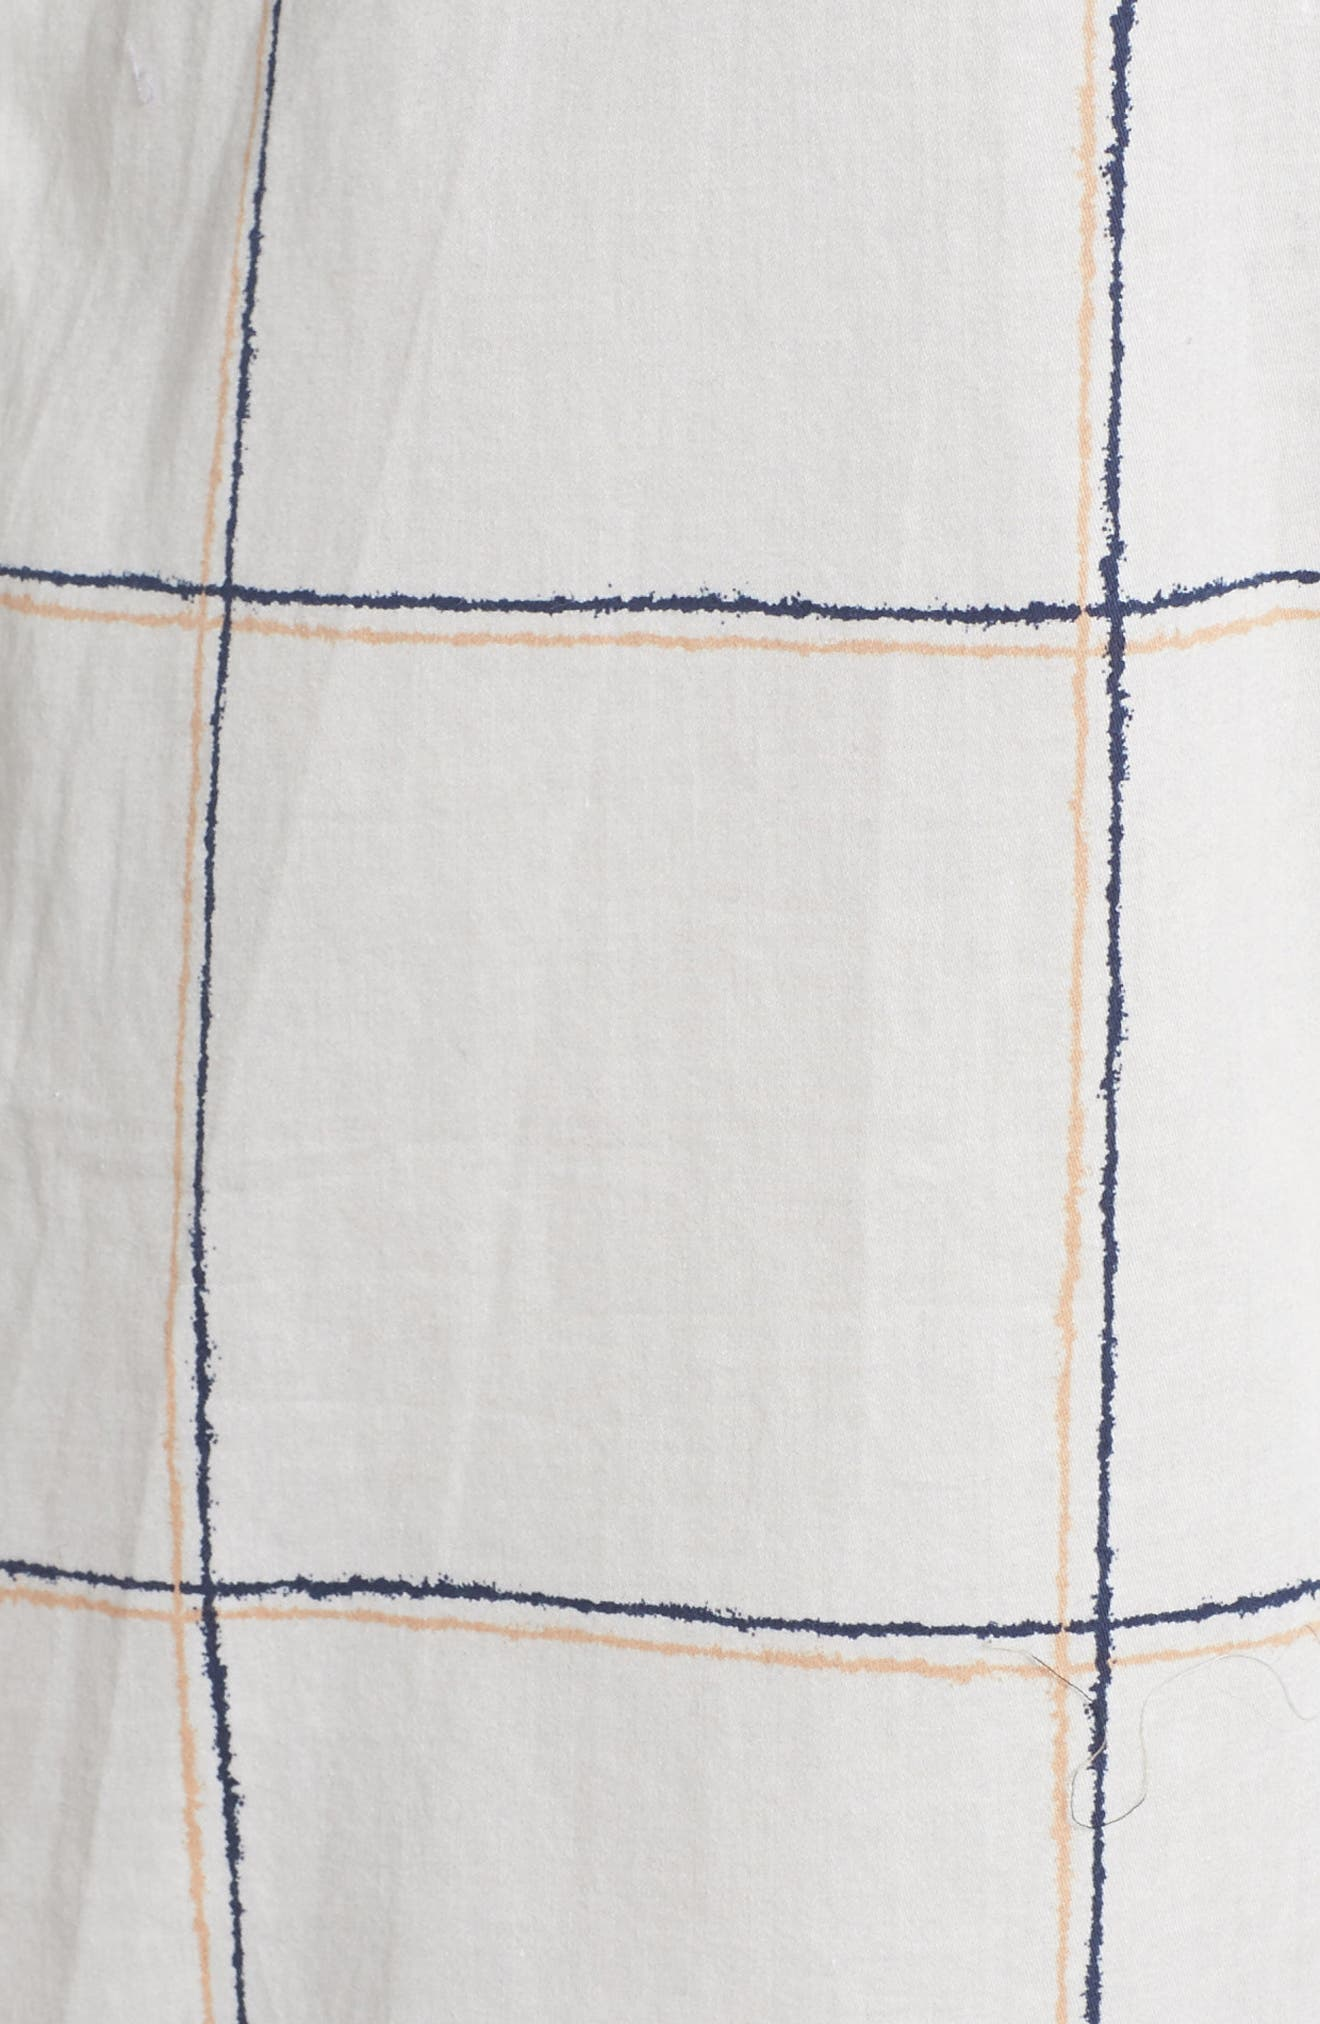 Evey Nightshirt,                             Alternate thumbnail 6, color,                             Coffee Check White